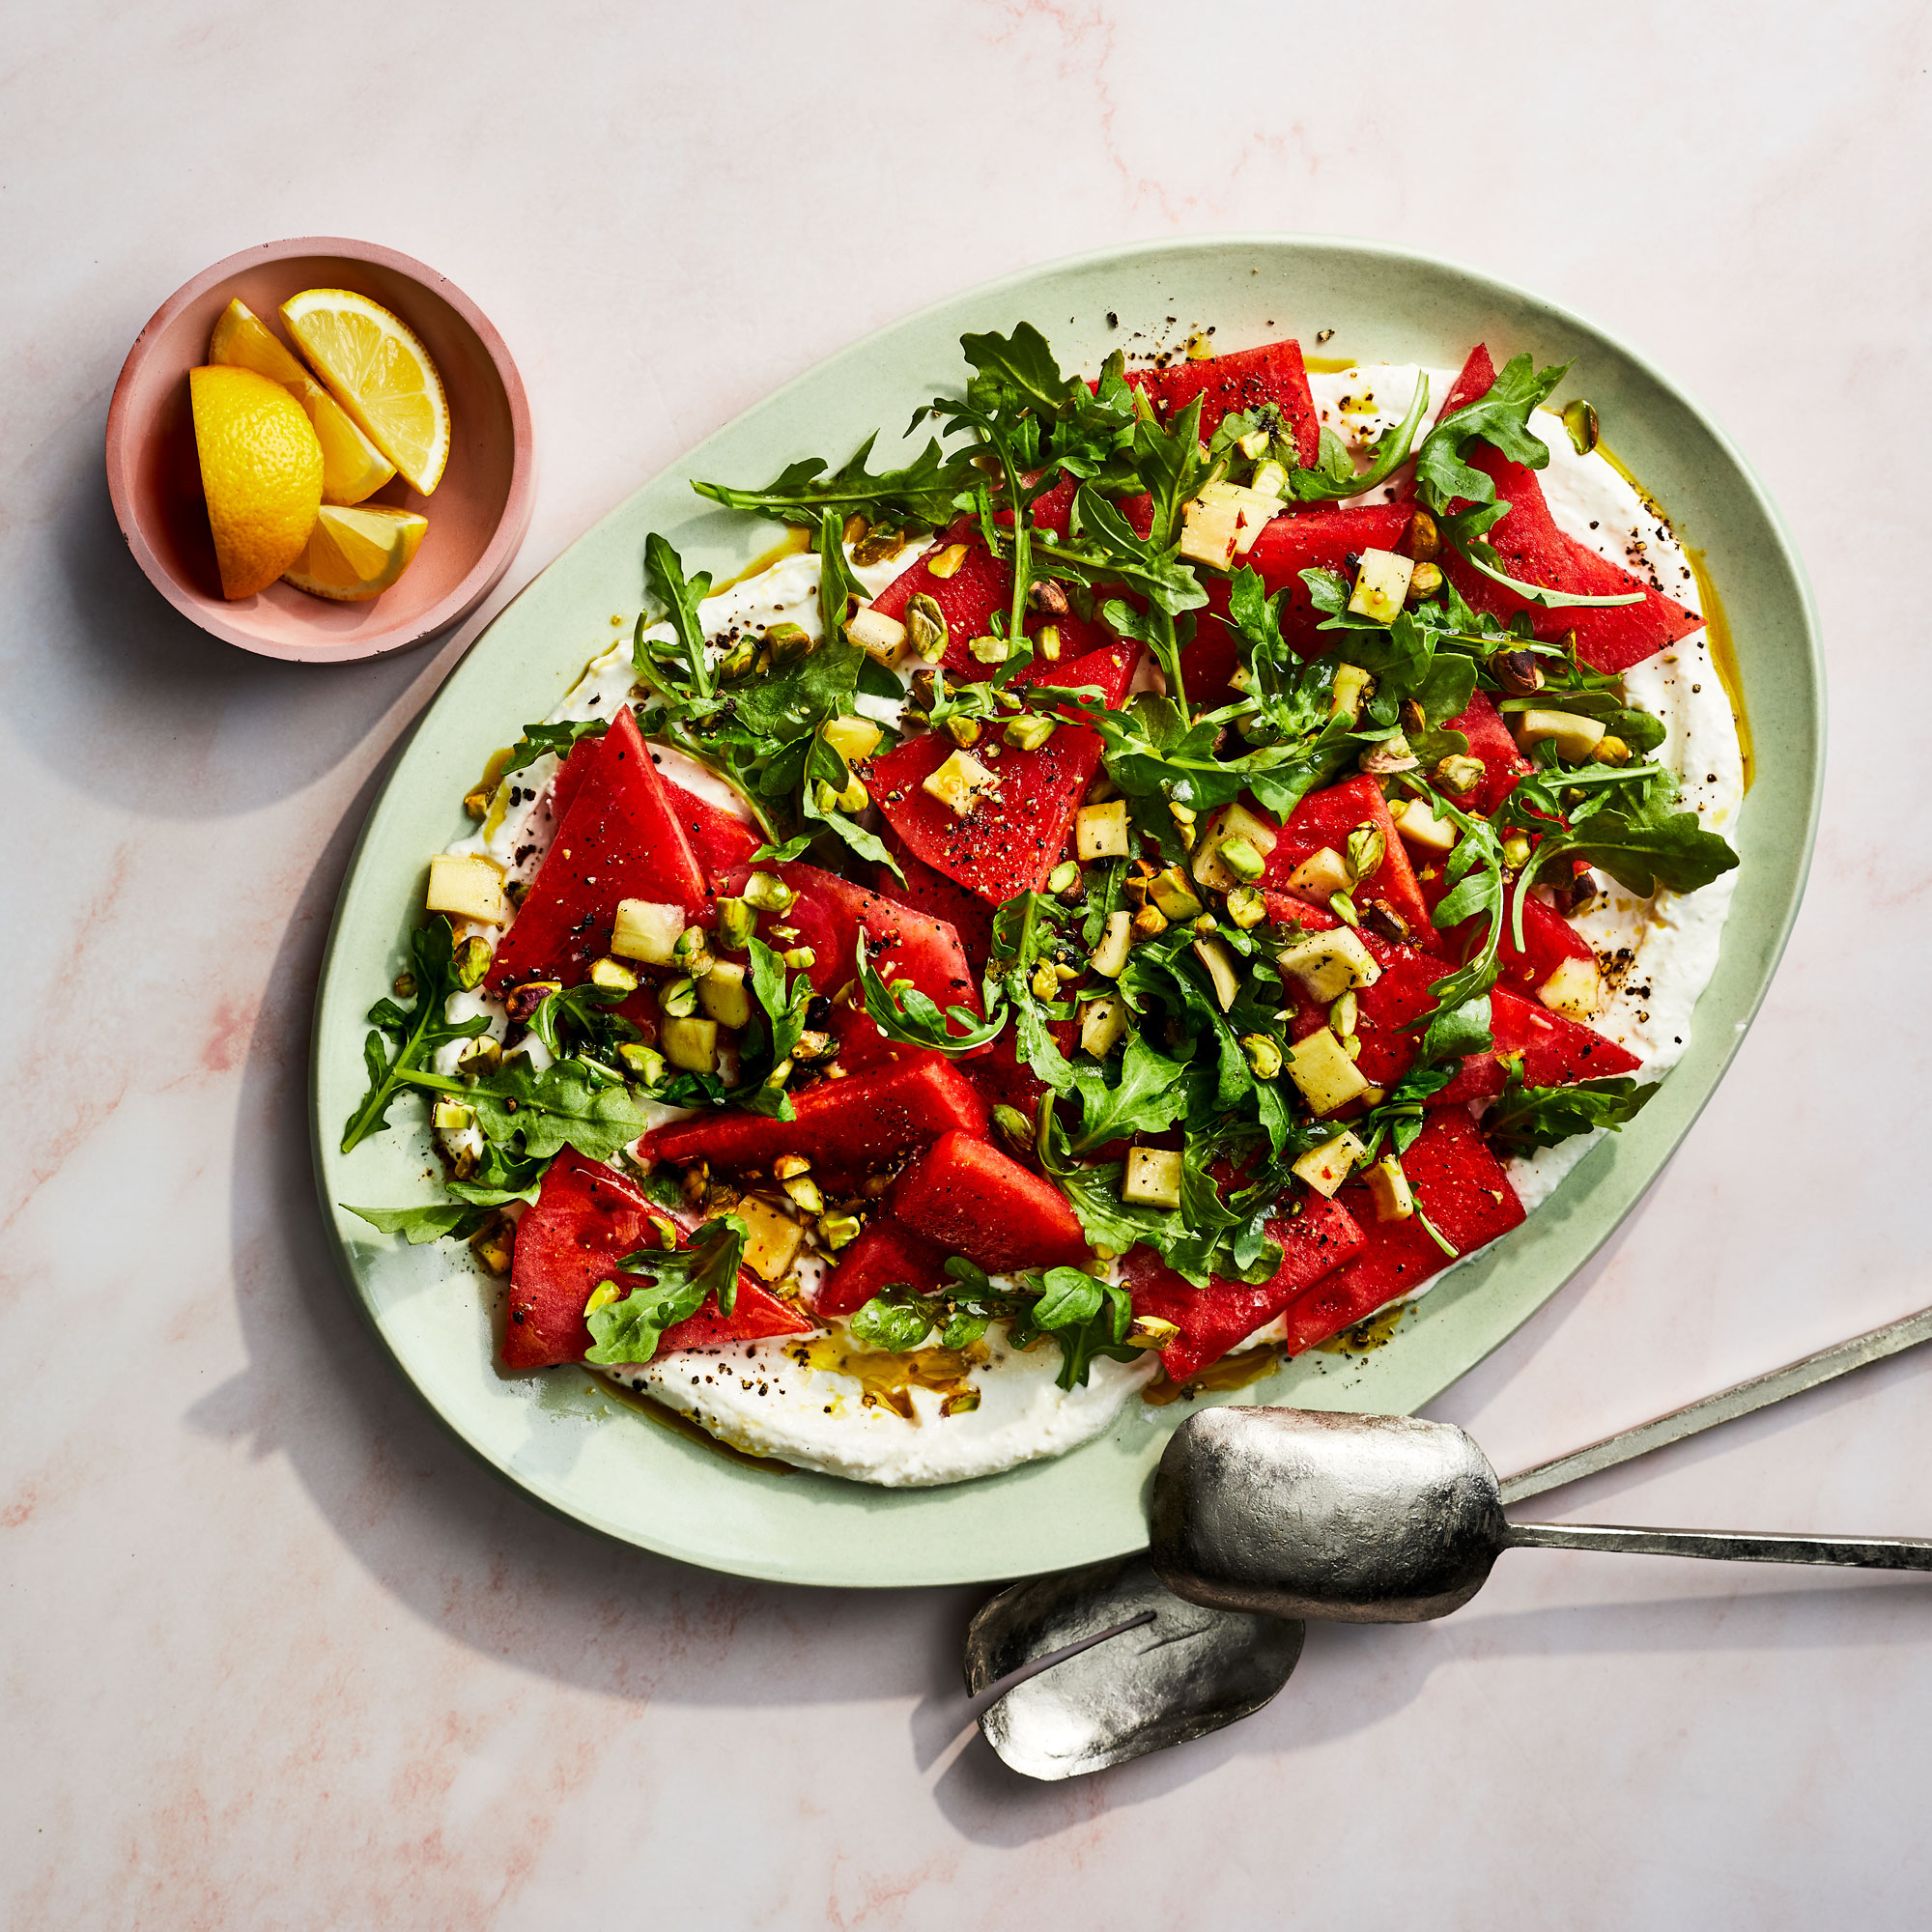 Watermelon Salad with Pickled Rind